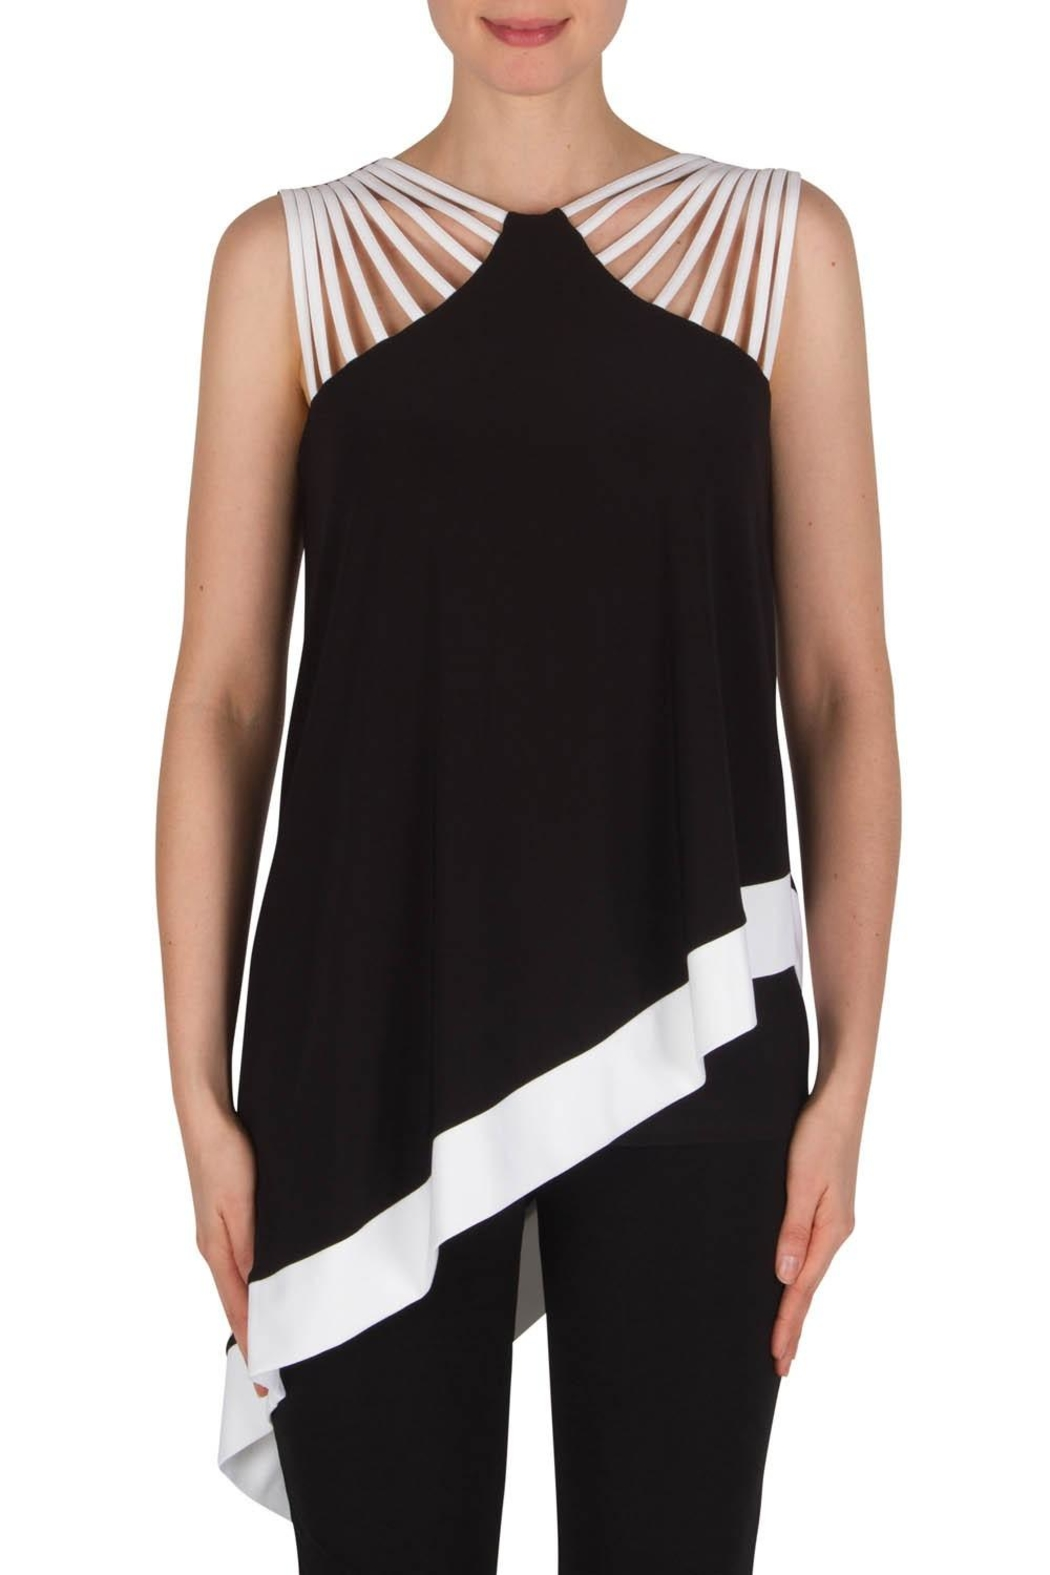 Joseph Ribkoff Asymmetrical  Top - Front Cropped Image